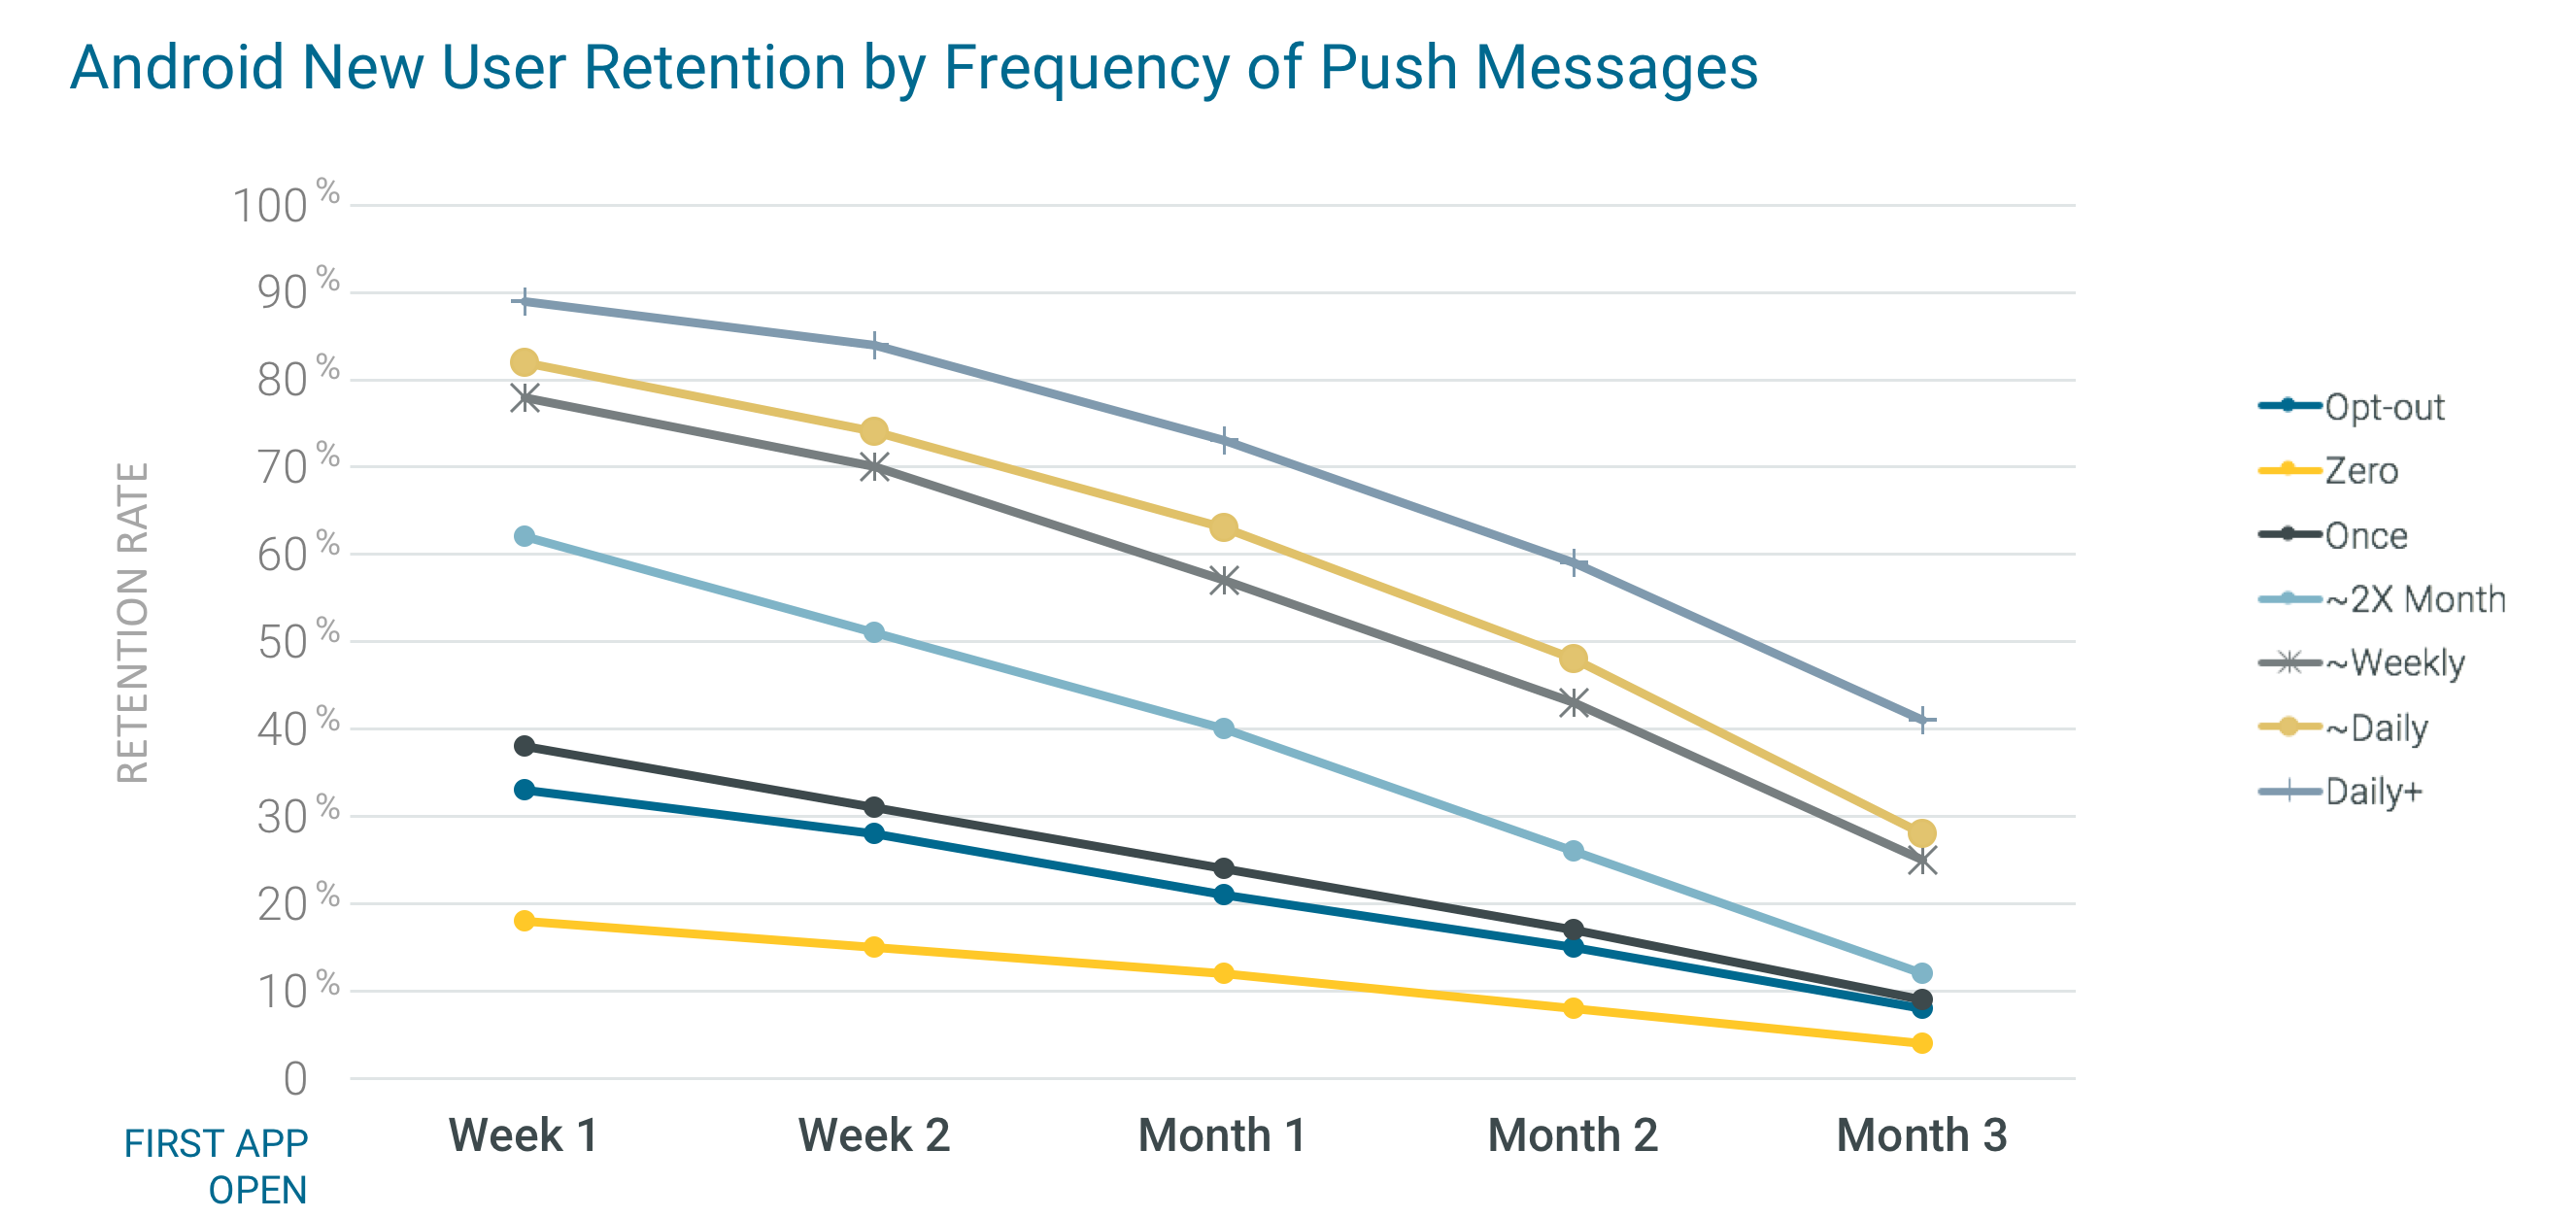 android_new_user_mobile_app_retention_by_frequency_of_push_messages